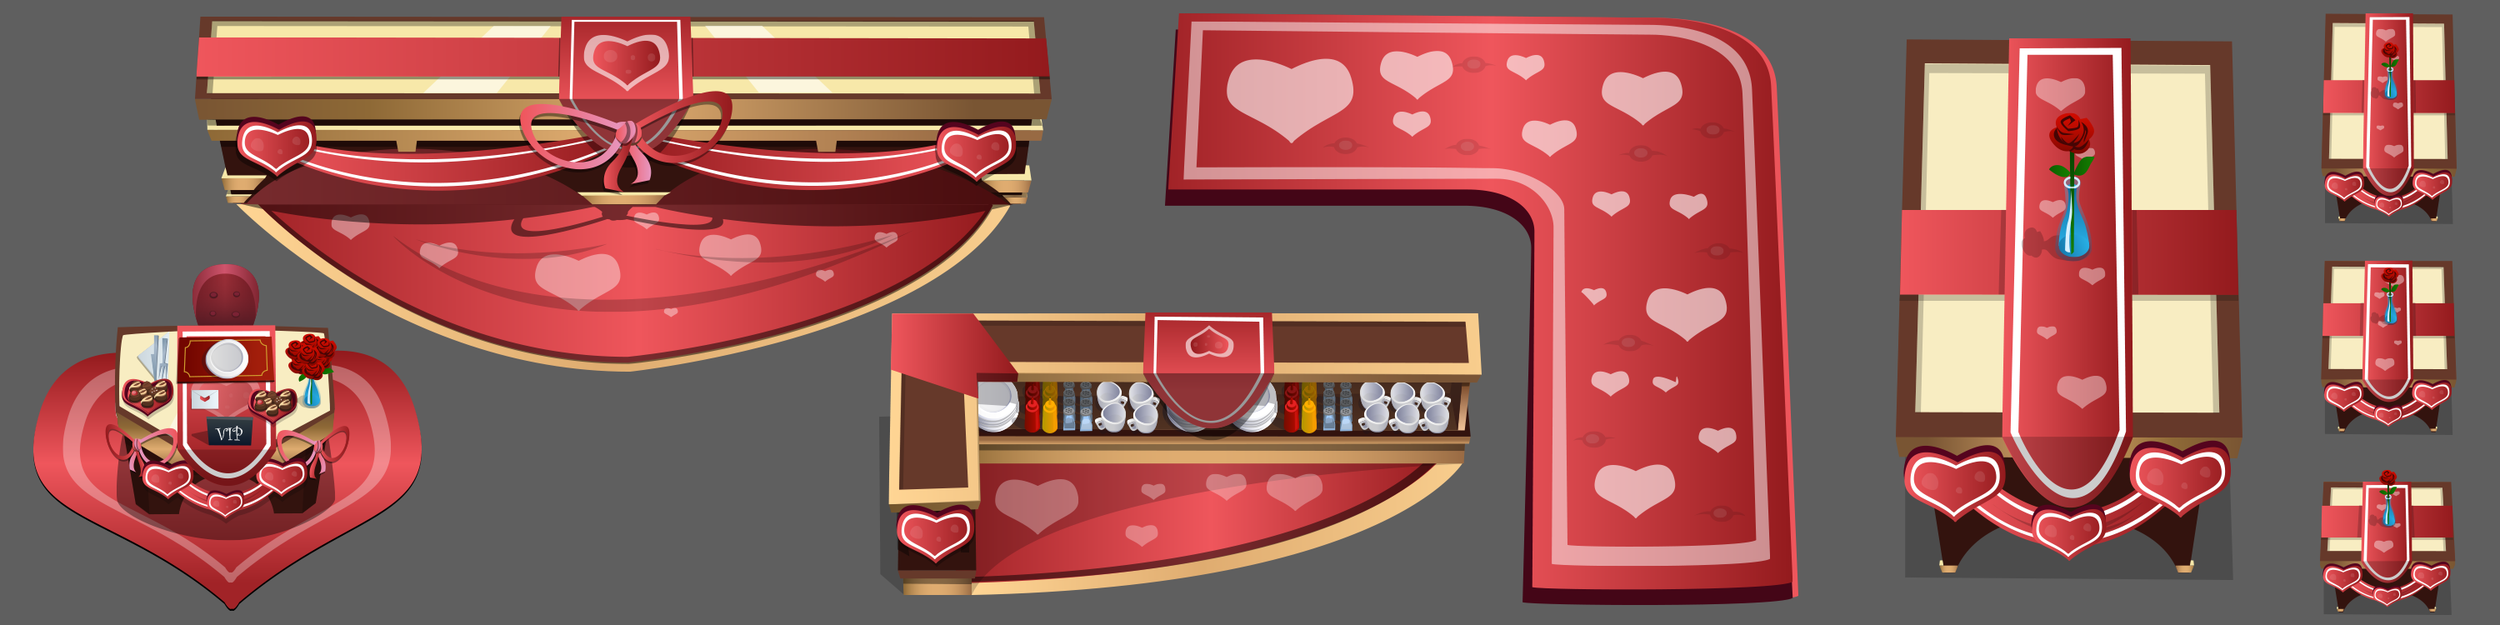 vday.png